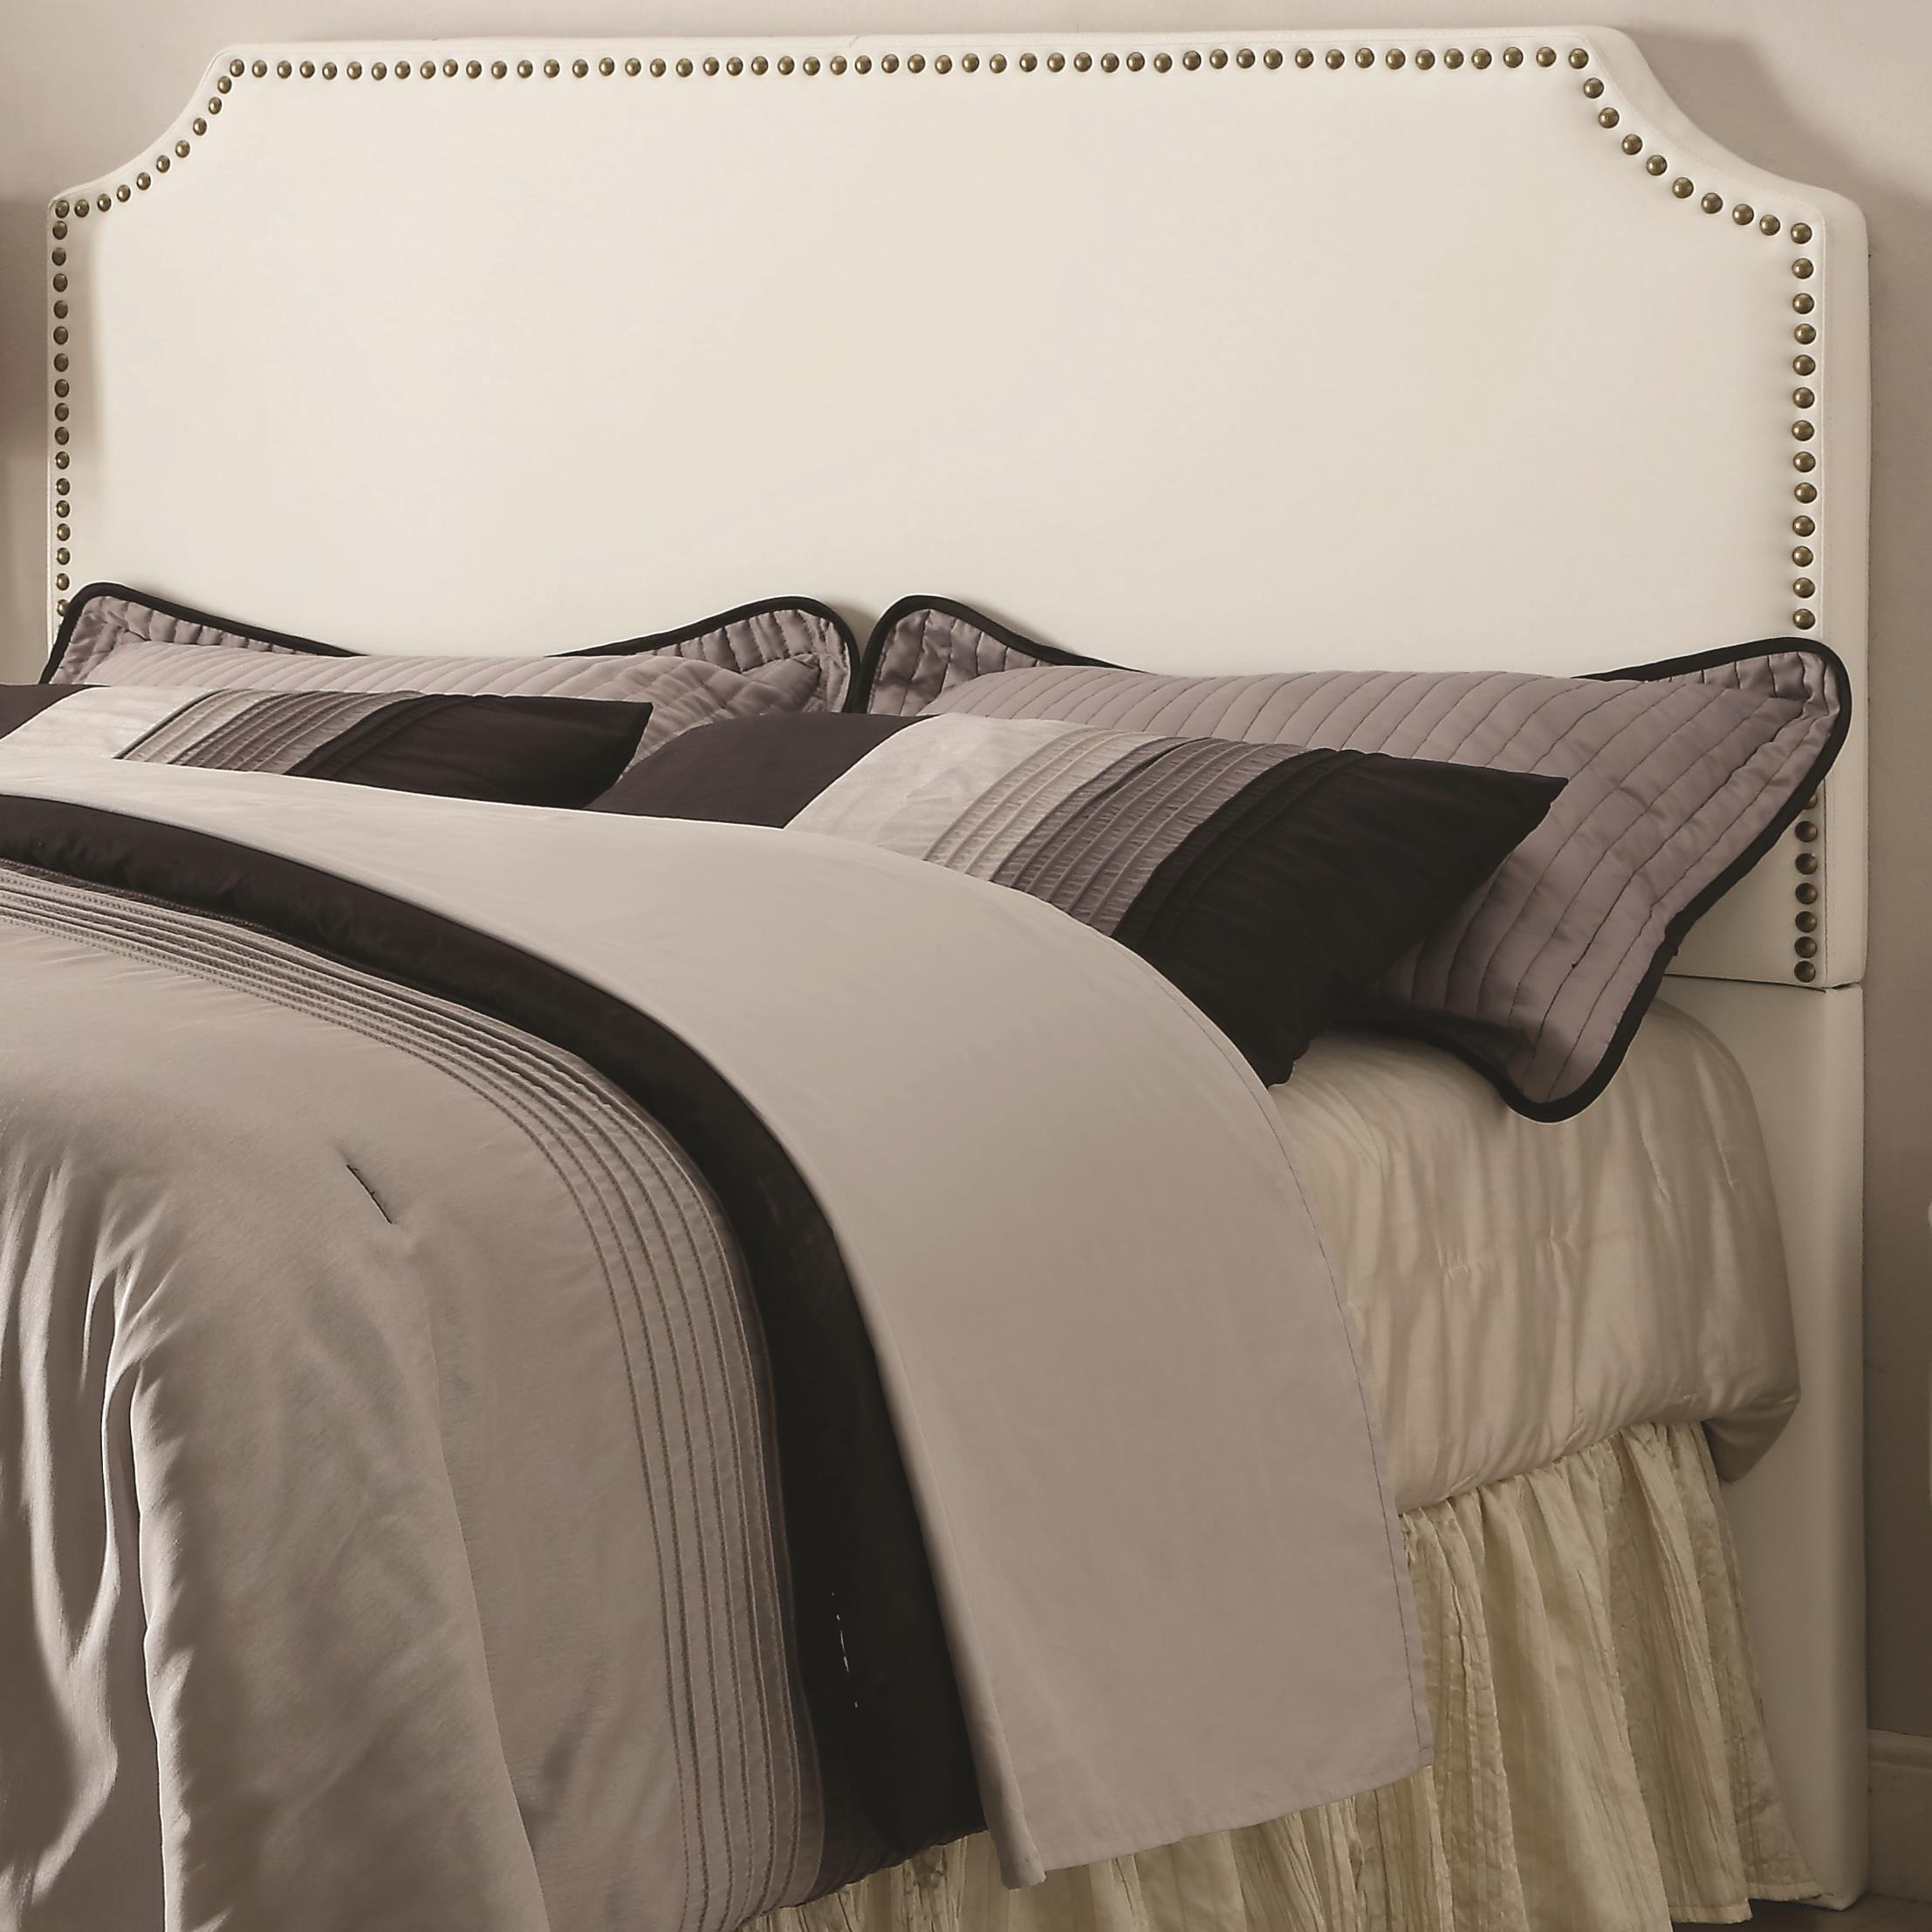 Coaster Upholstered Beds Queen/Full Novato Upholstered Headboard - Item Number: 300454QF